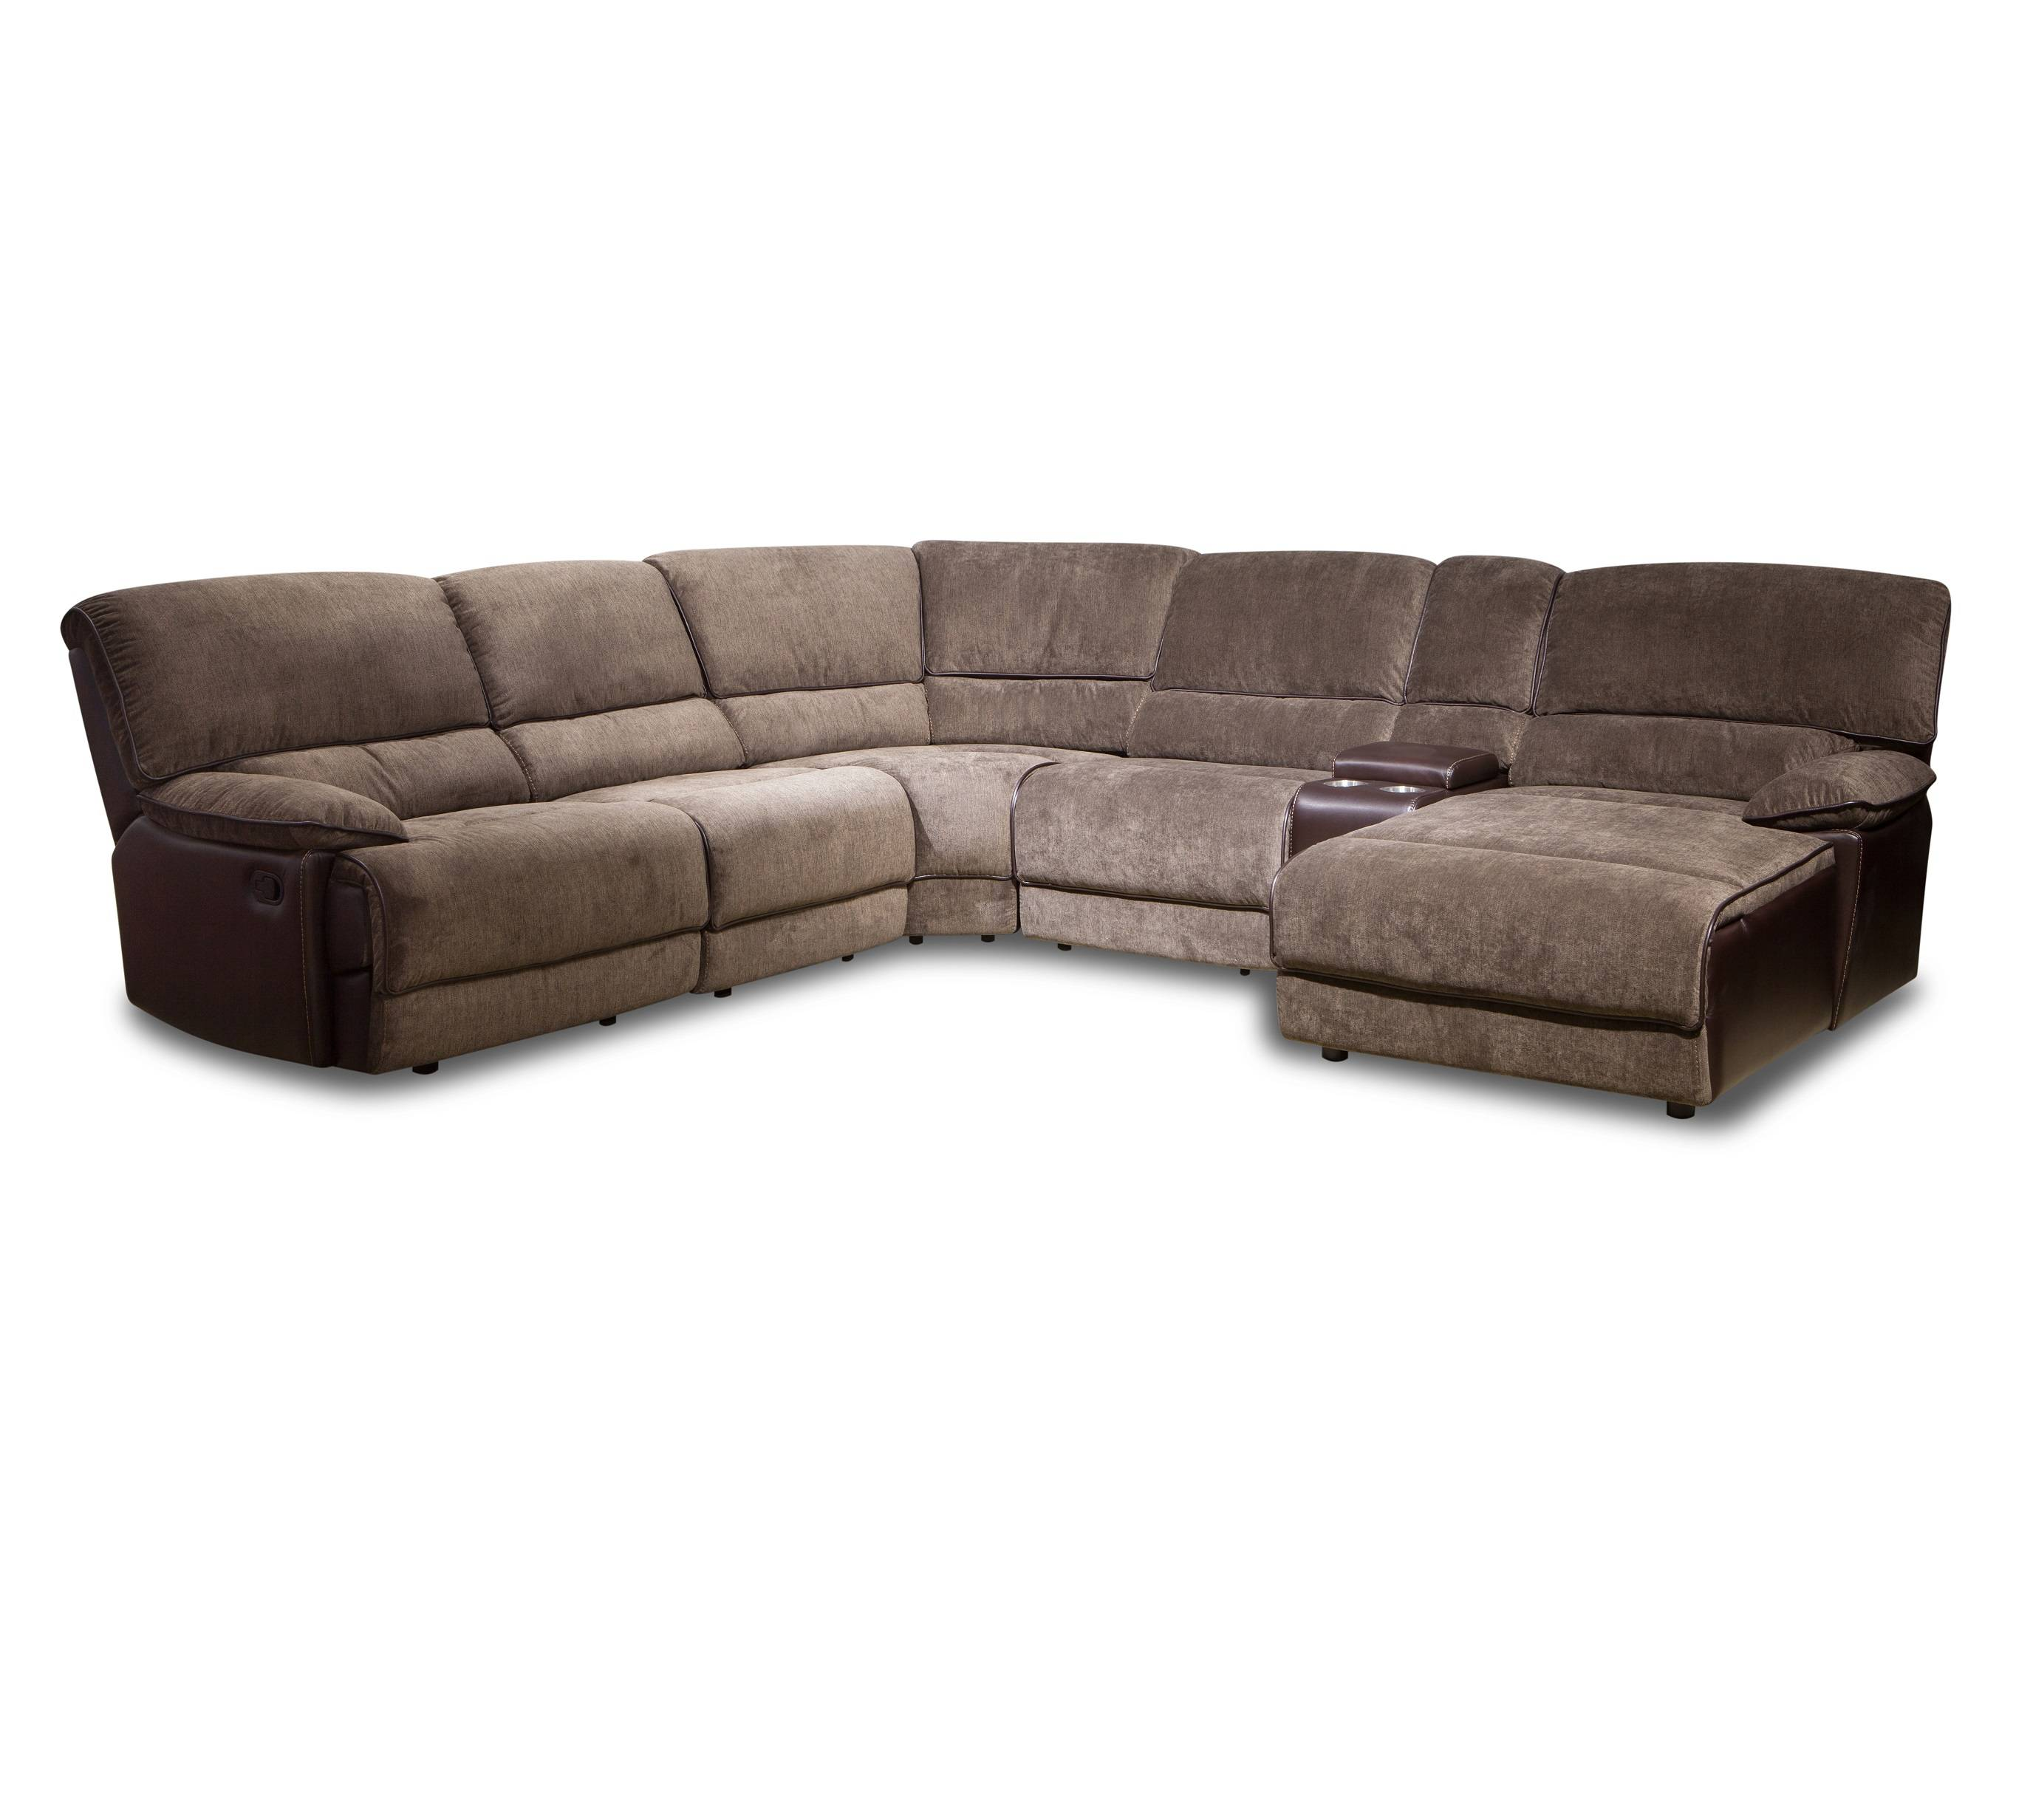 Luxury living room furniture sofa fabric sectional sofa with chaise Featured Image